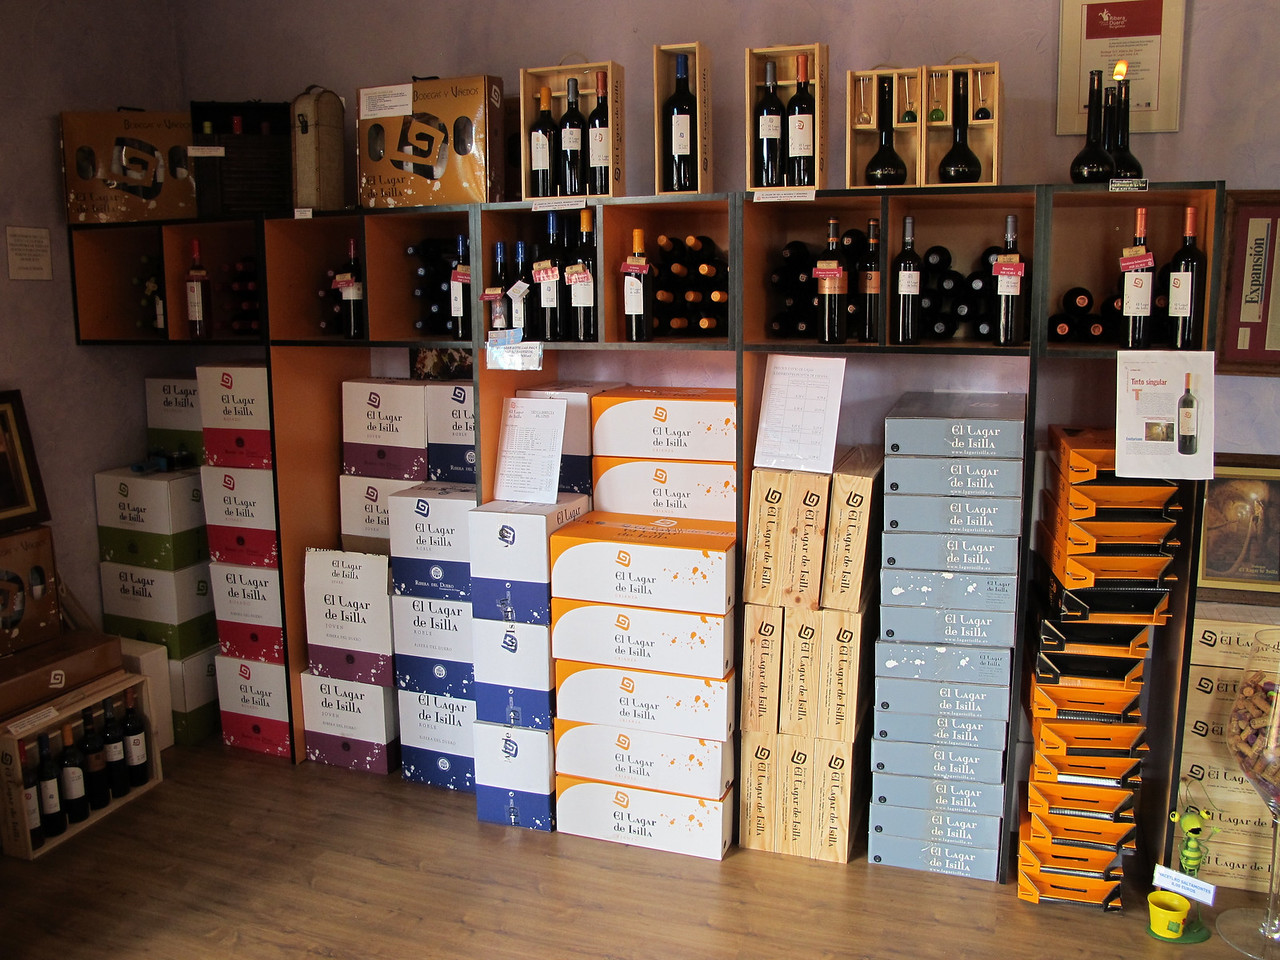 The winery has a large store where you can buy wine, cheeses, meats or souvenirs of your visit.